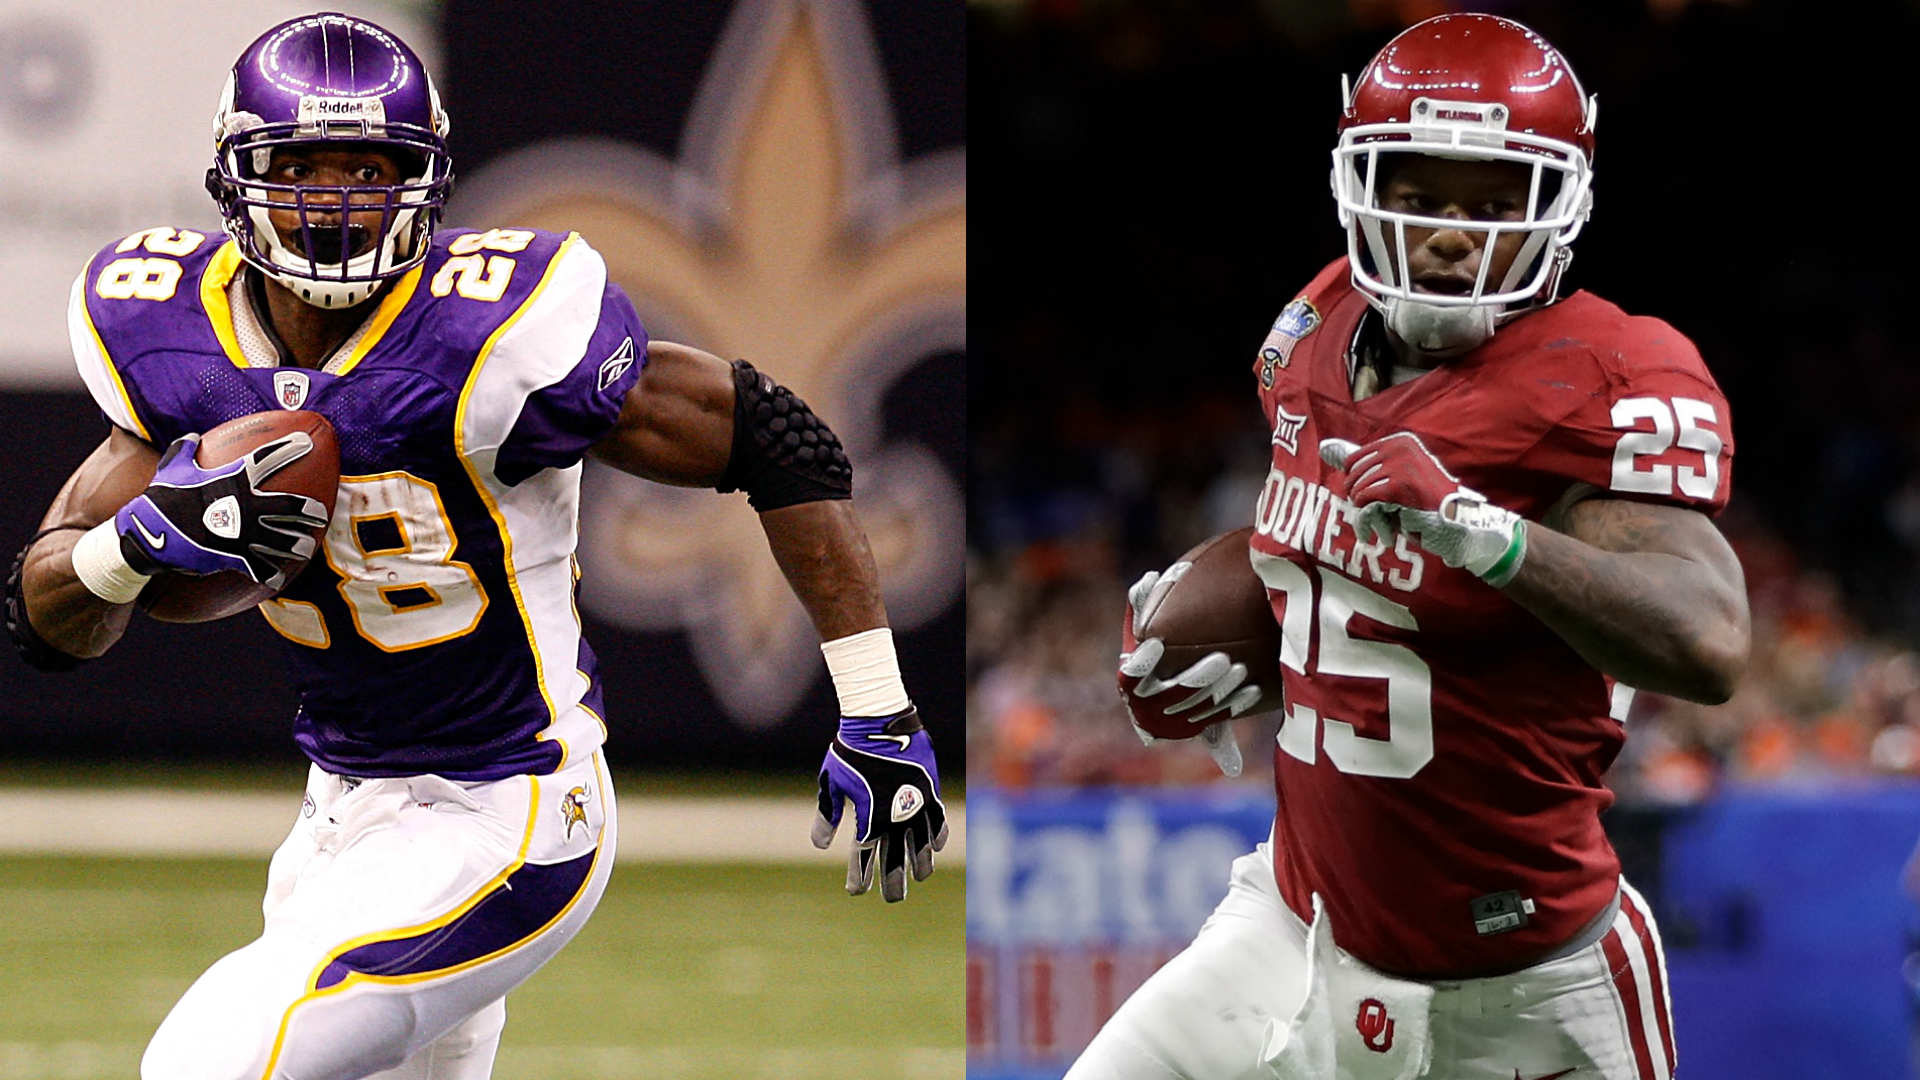 Bengals rookie Joe Mixon to train with Adrian Peterson ahead of camp